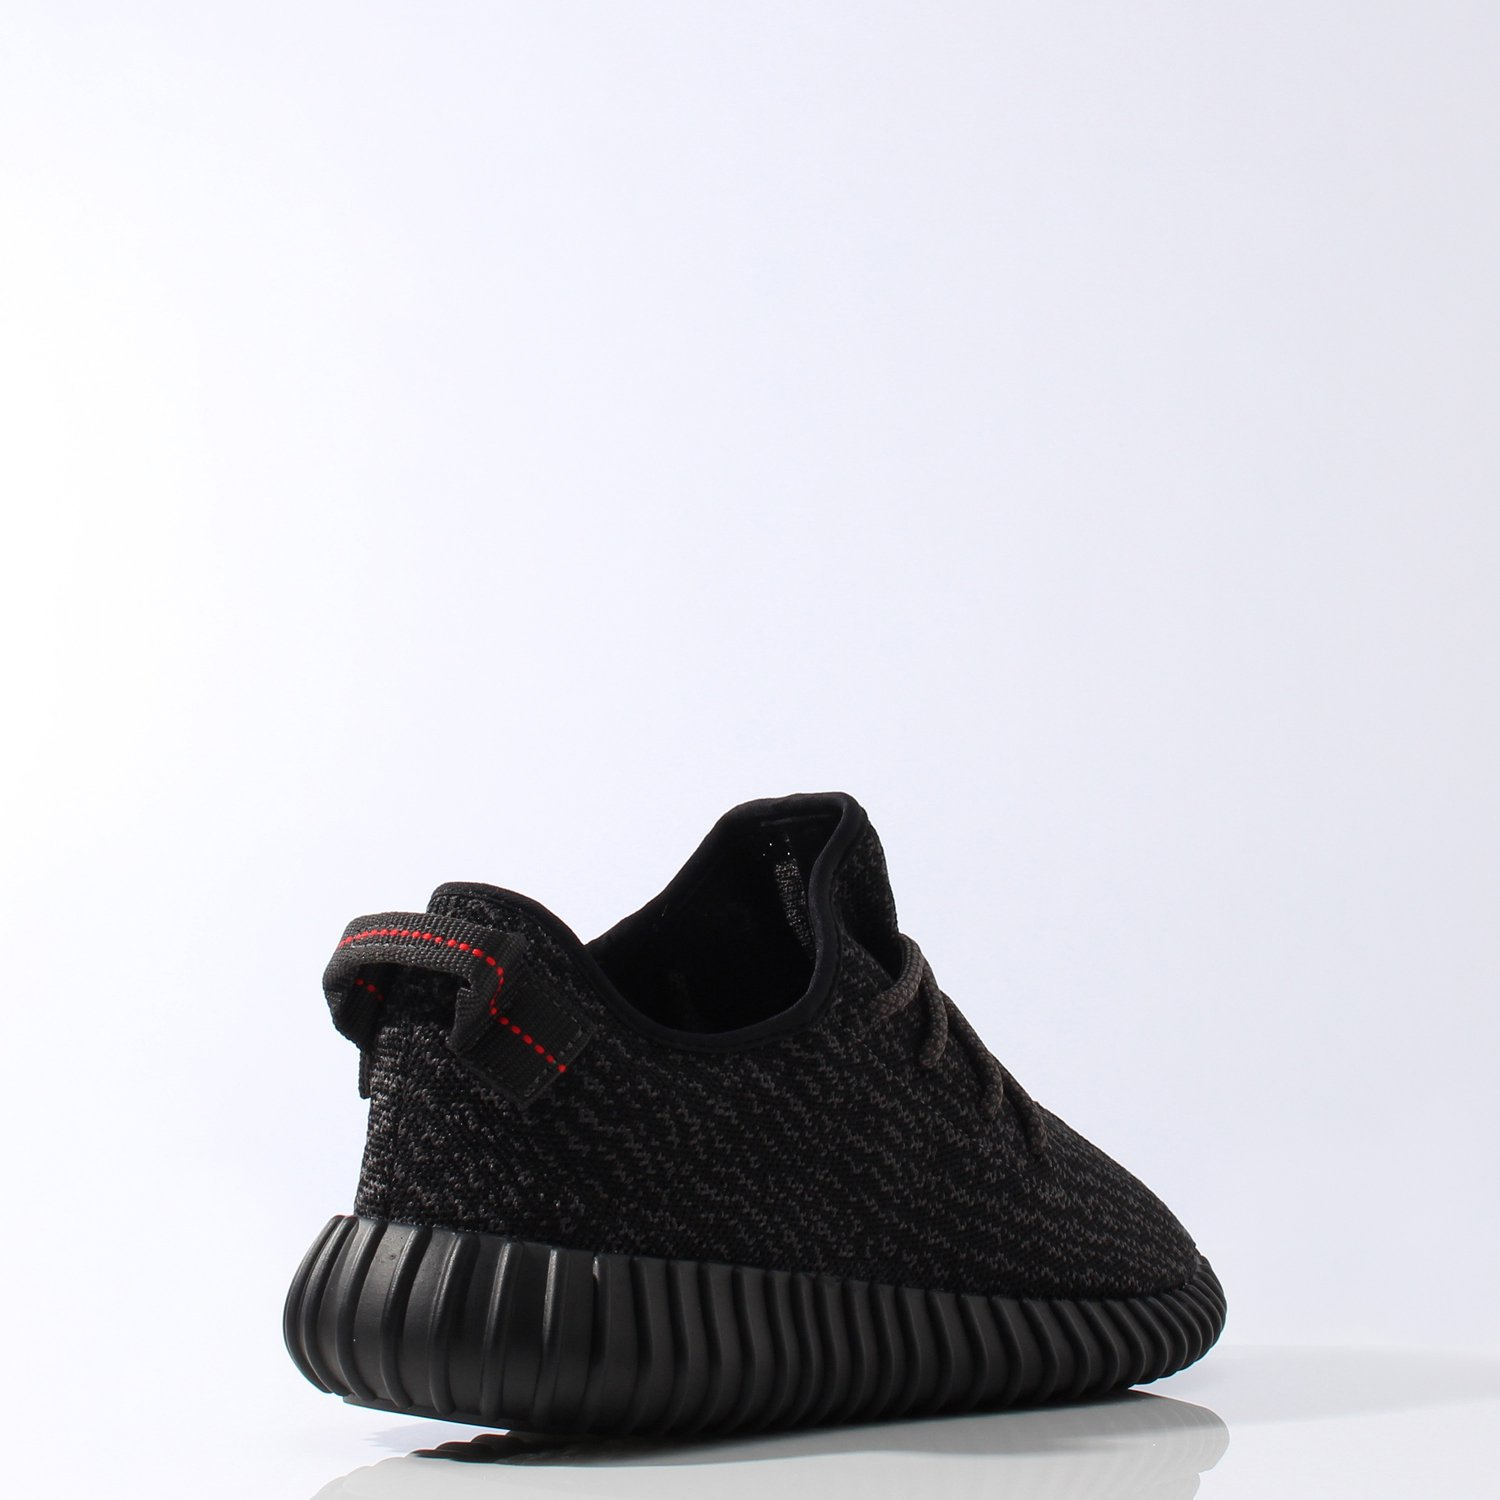 Yeezy Boost 350 Pirate Black (2016) [4]